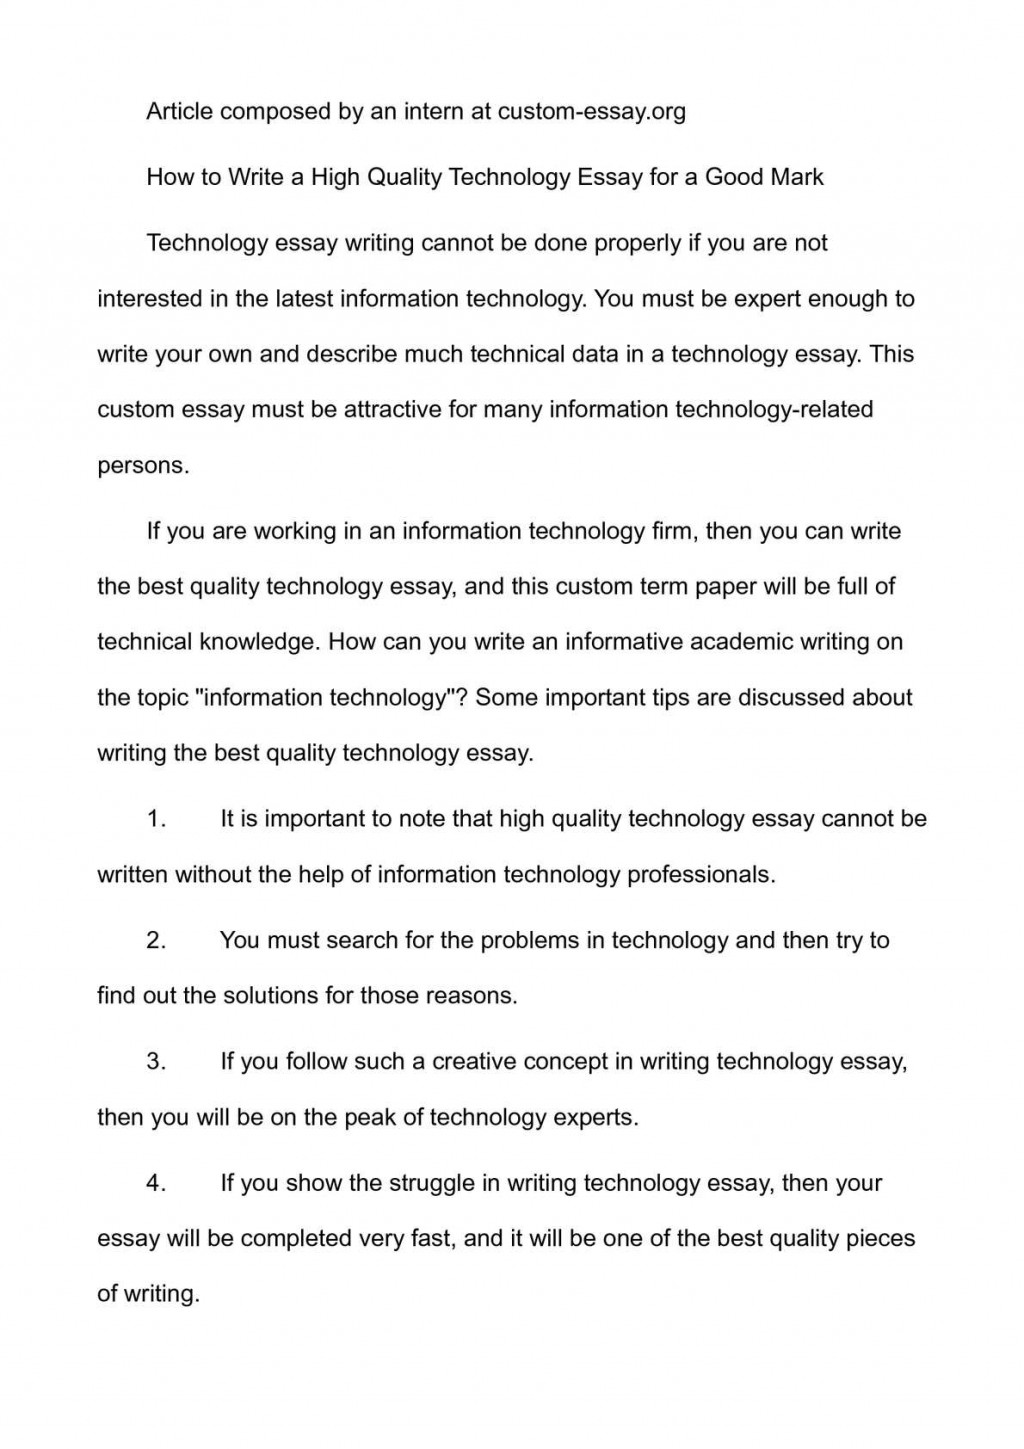 001 P1 Technology Essay Top Science And Questions Florida Institute Of Prompts Large